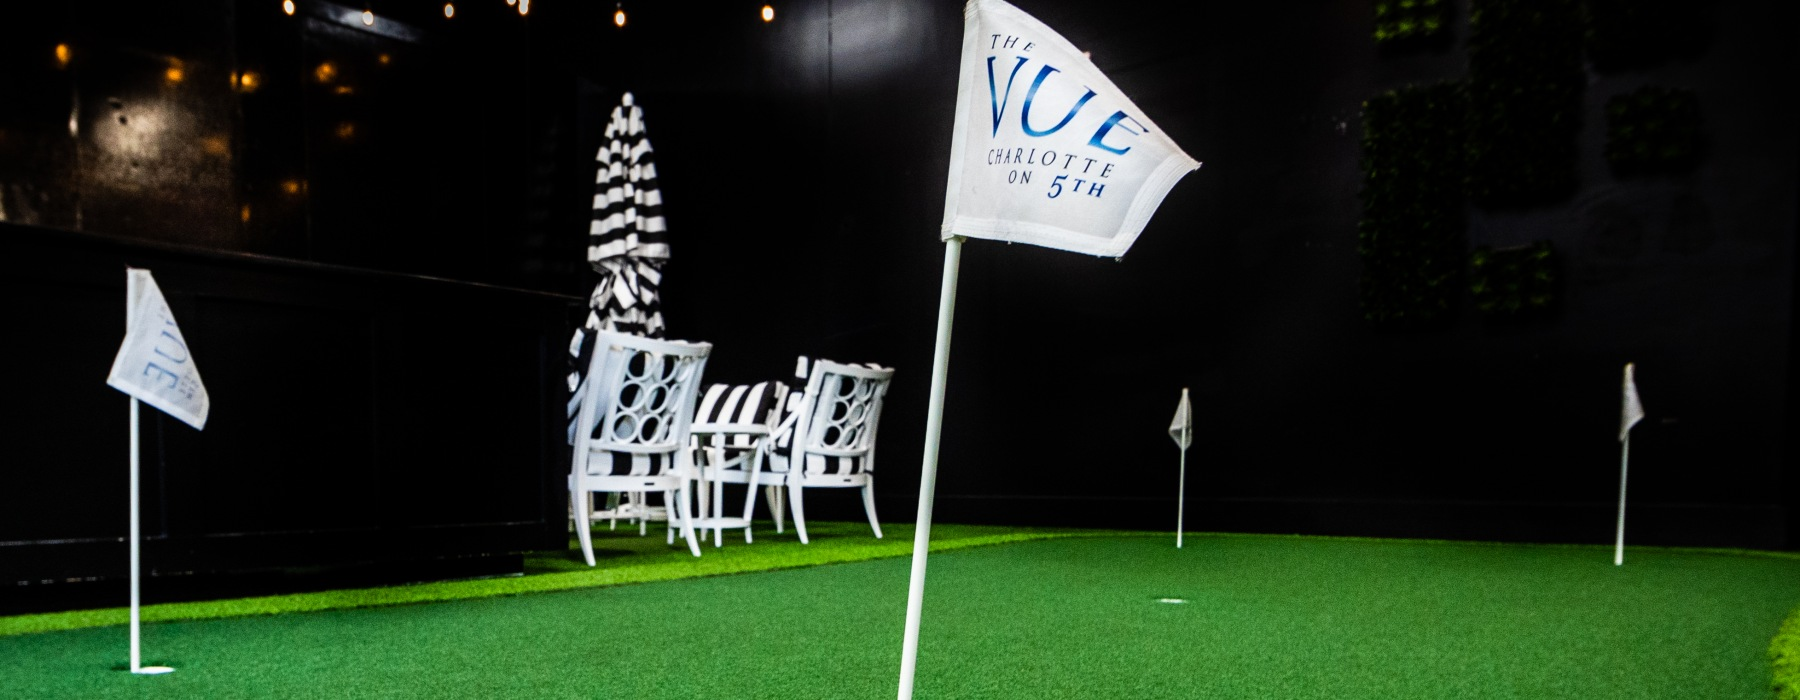 Full Sized Golf Simulator Lounge at The VUE Apartments in Charlotte, North Carolina